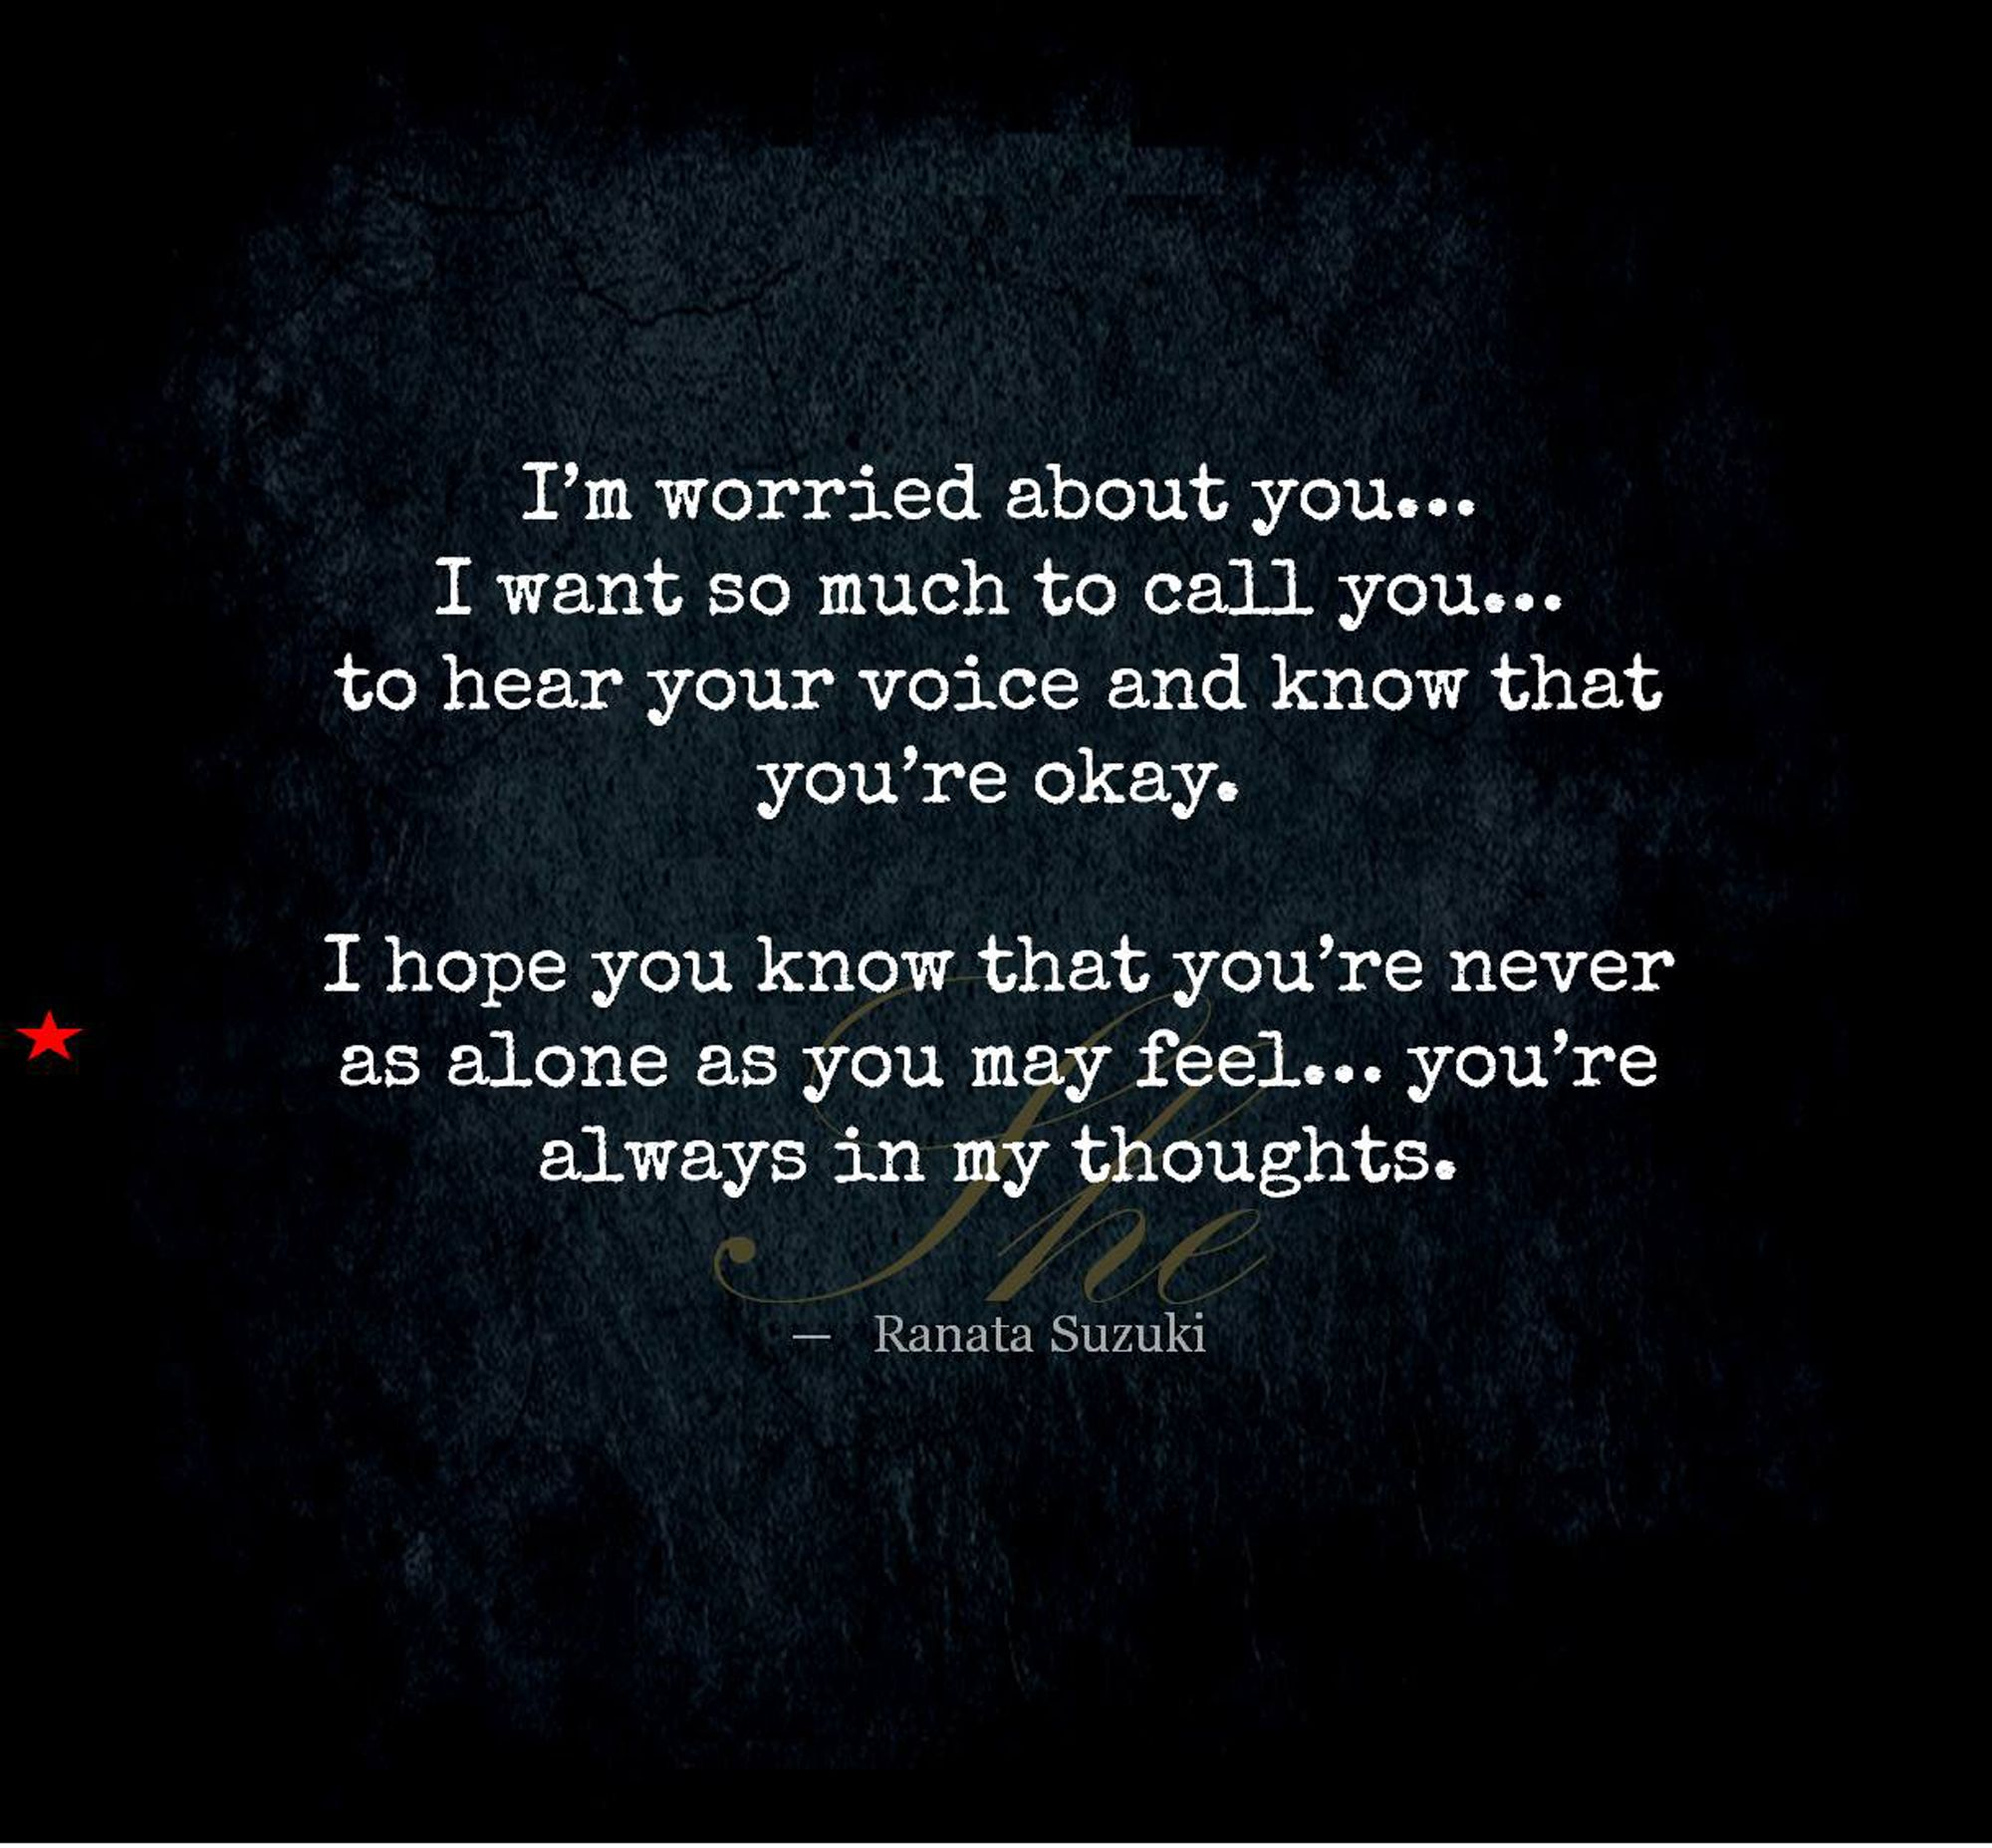 I M Worried About You I Want So Much To Call You To Hear Your Voice And Know That You Re Okay I H Care About You Quotes About You Quotes Be Yourself